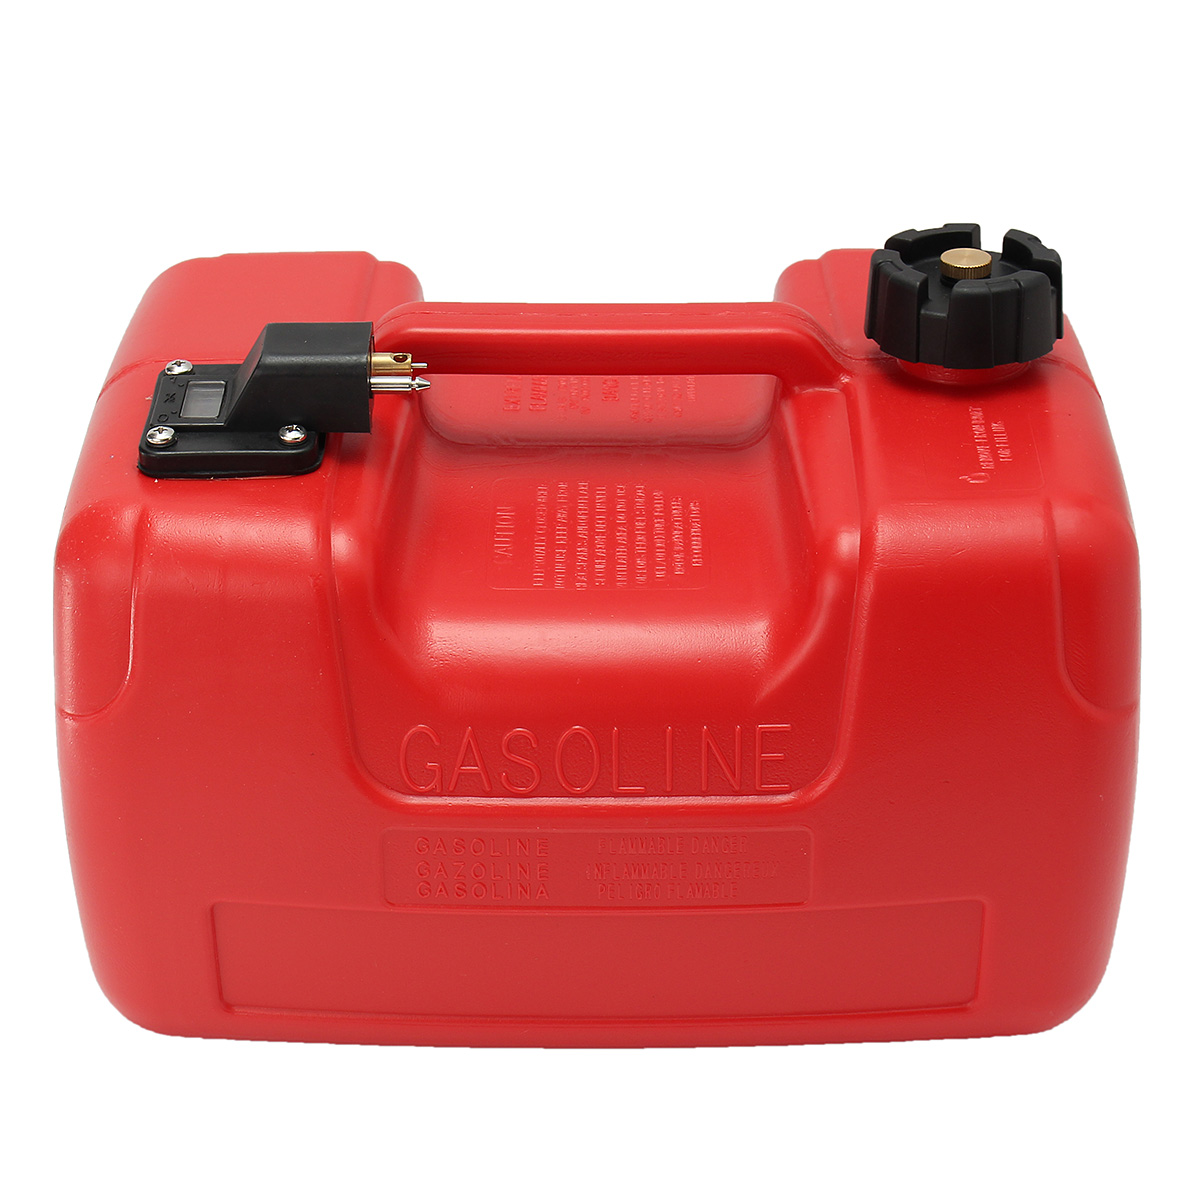 12L Red Plastic Portable Boat Yacht Engine Marine Outboard Fuel Tank Oil Box With Connector Anti-static Corrosion-resistant12L Red Plastic Portable Boat Yacht Engine Marine Outboard Fuel Tank Oil Box With Connector Anti-static Corrosion-resistant